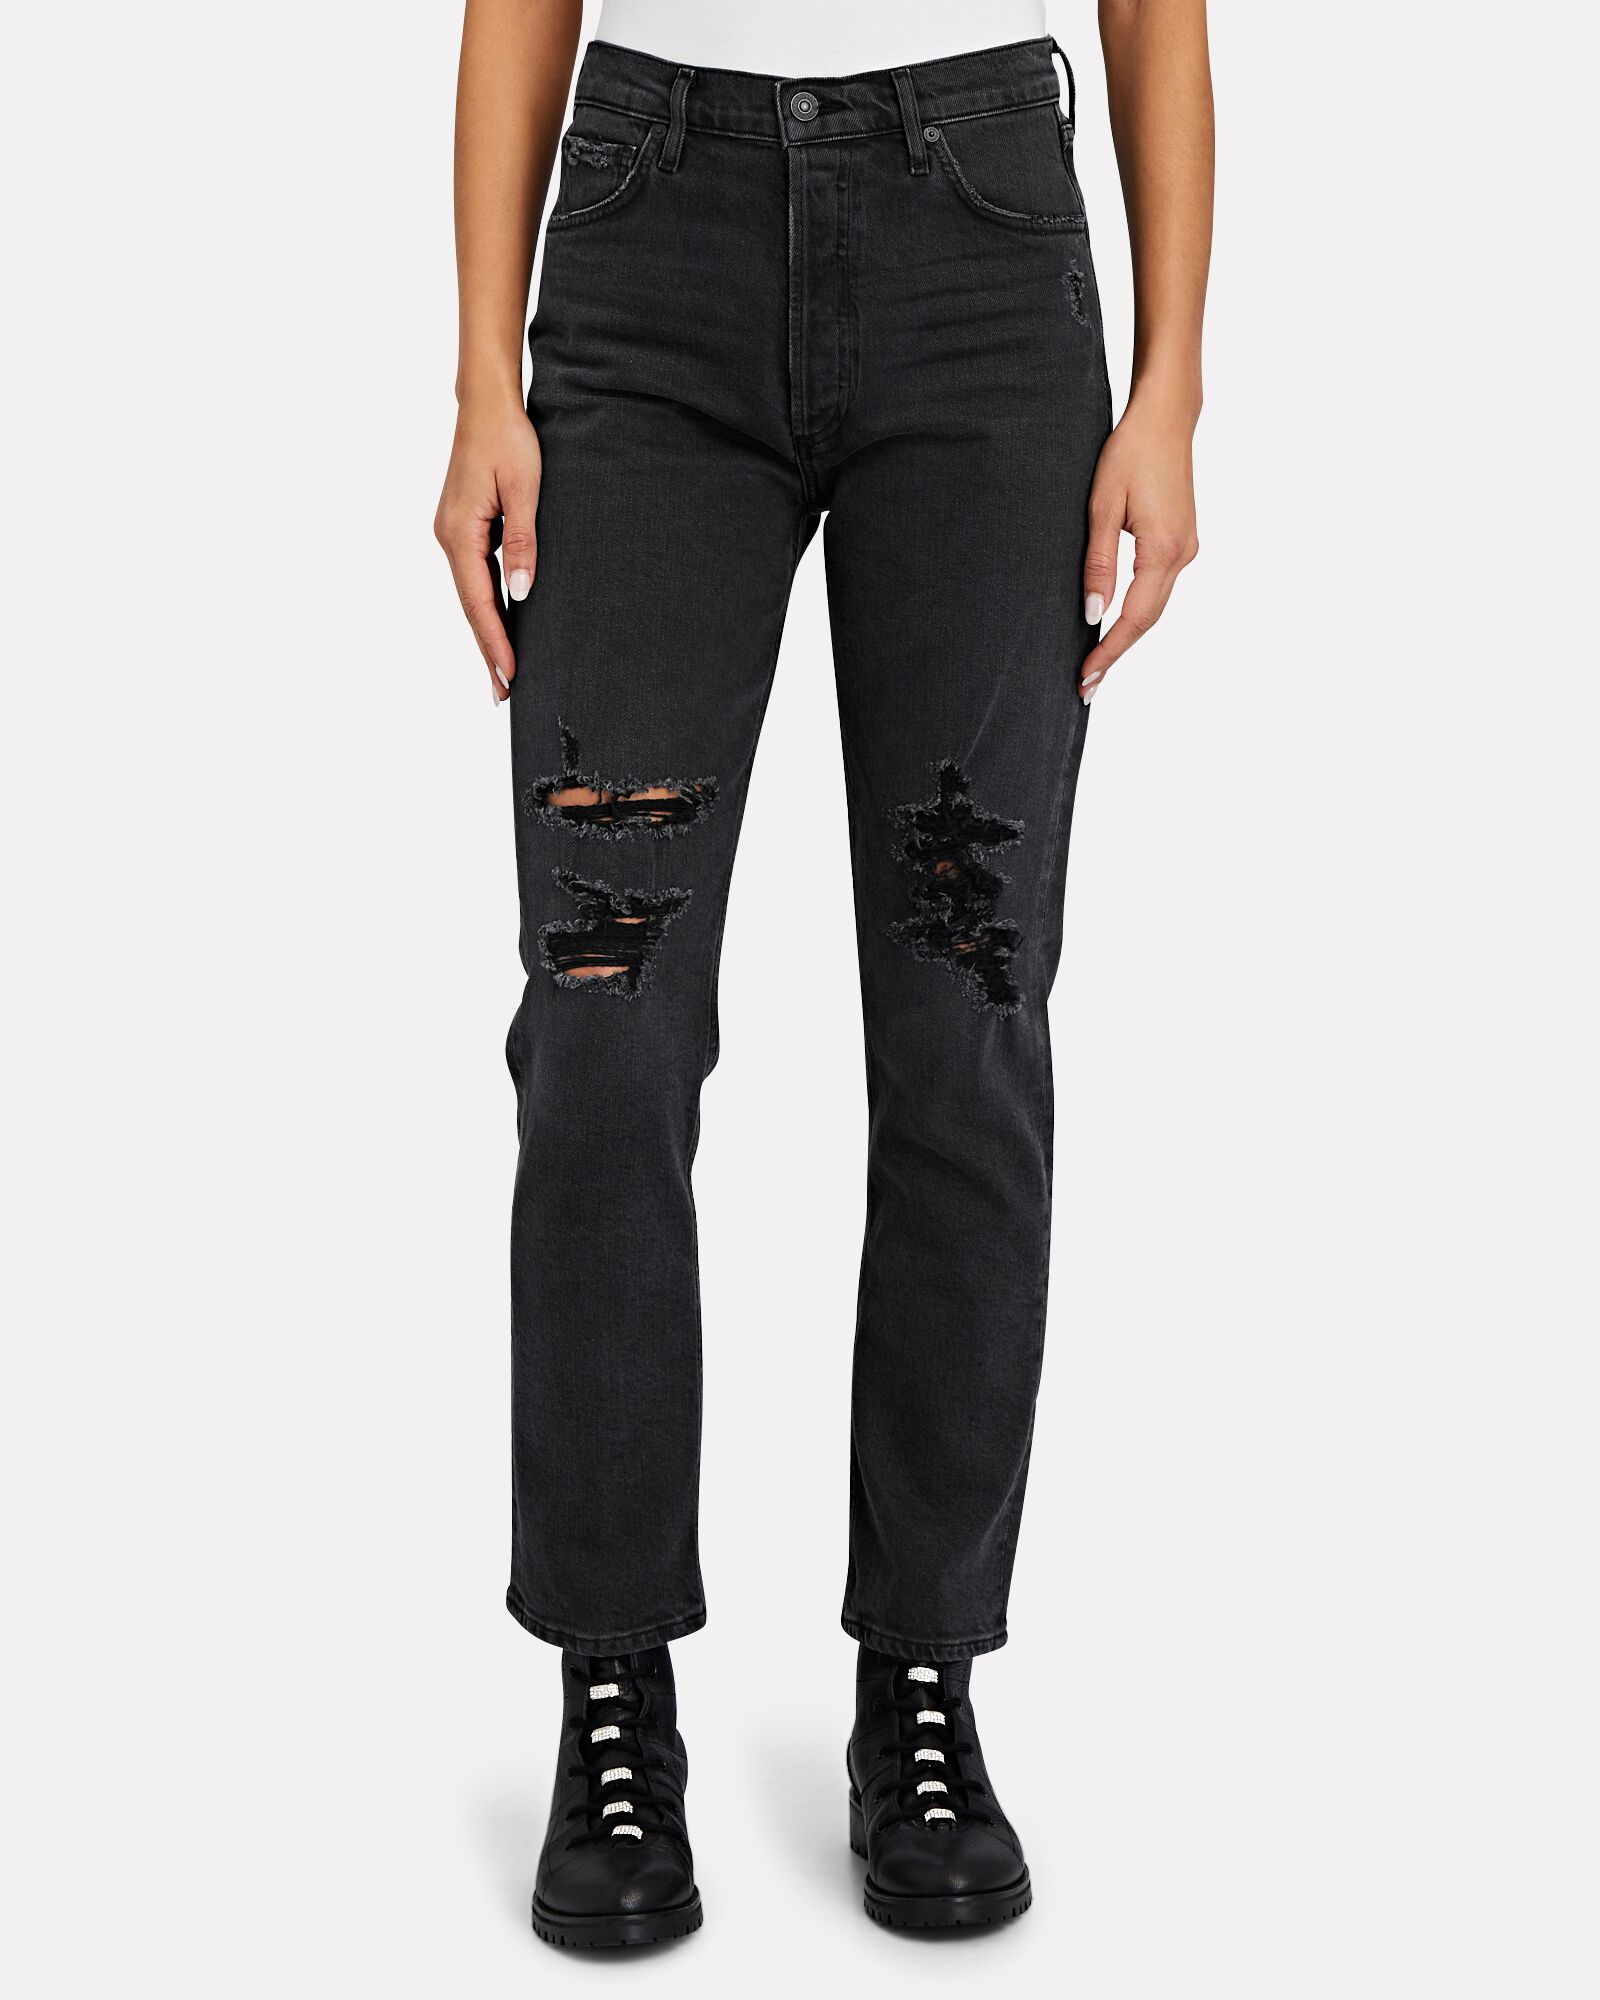 Charlotte Distressed Straight-Leg Jeans, HAPPY HOUR, hi-res